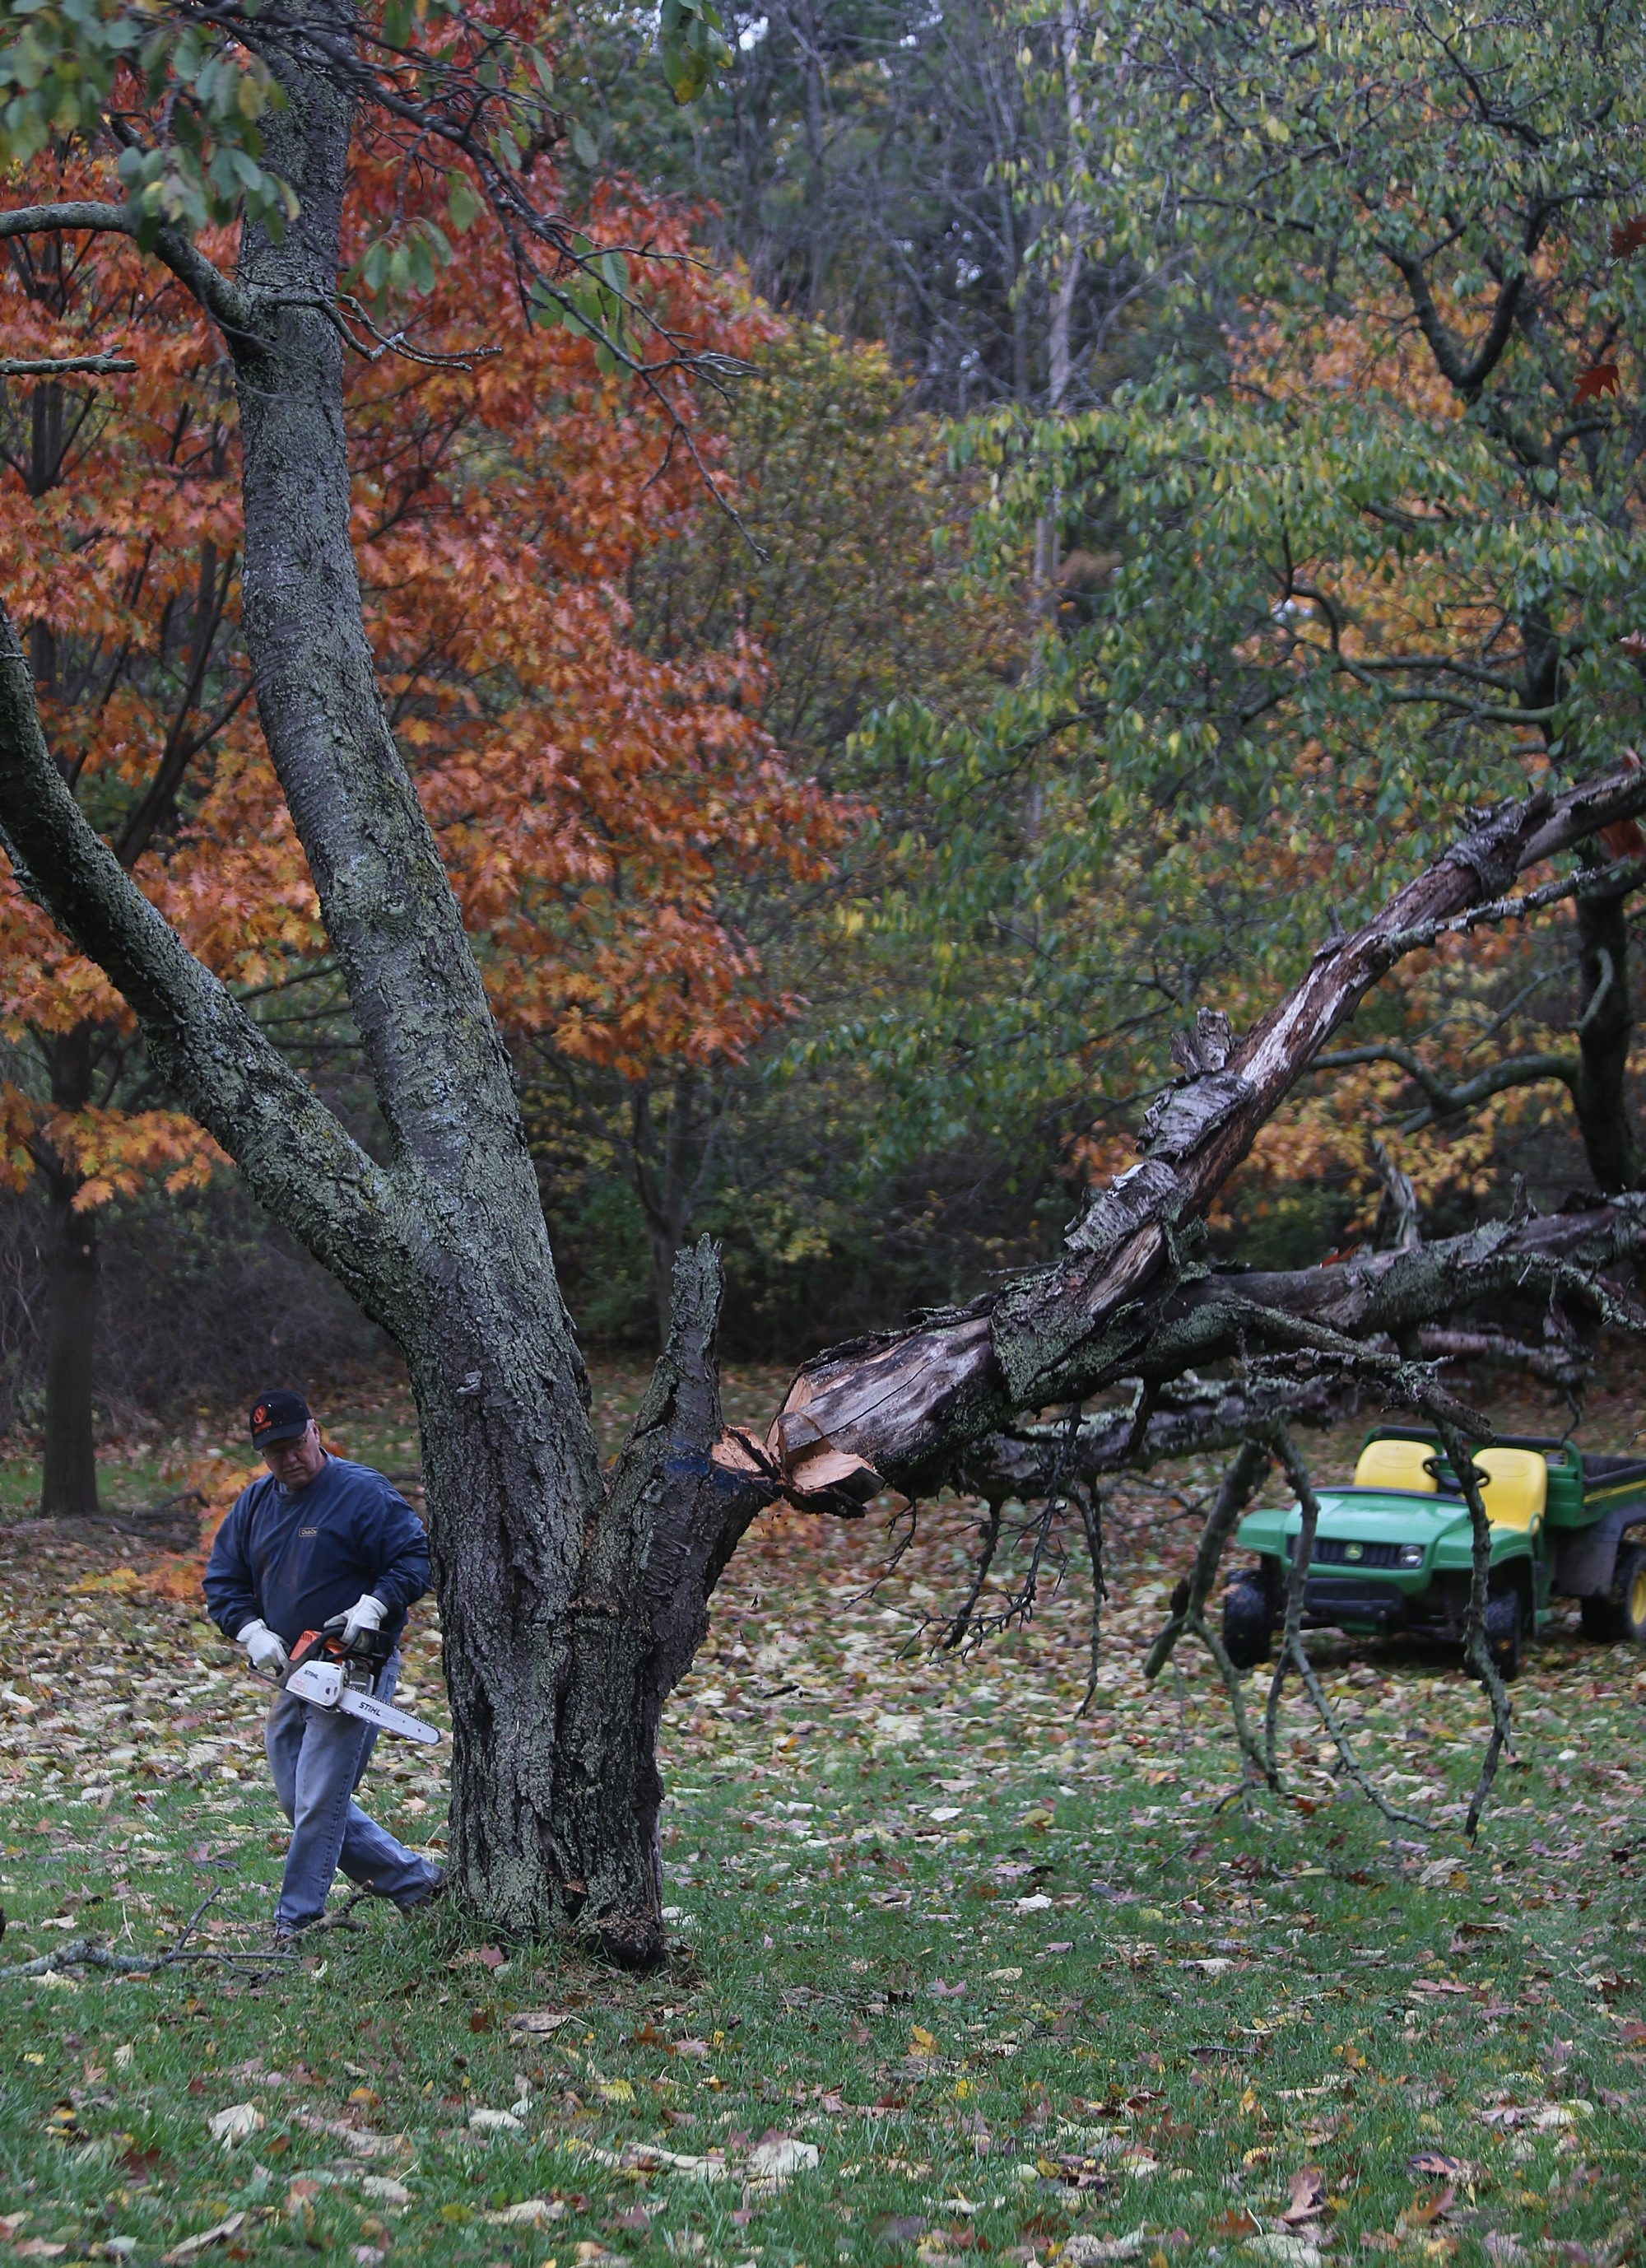 Glenn Caverly, supervisor at Joseph Davis State Park in Lewiston, works to clear a dead tree as the town pursues efforts to improve and operate the largely underdeveloped and underused 388-acre site under a 20-year contract with the state.